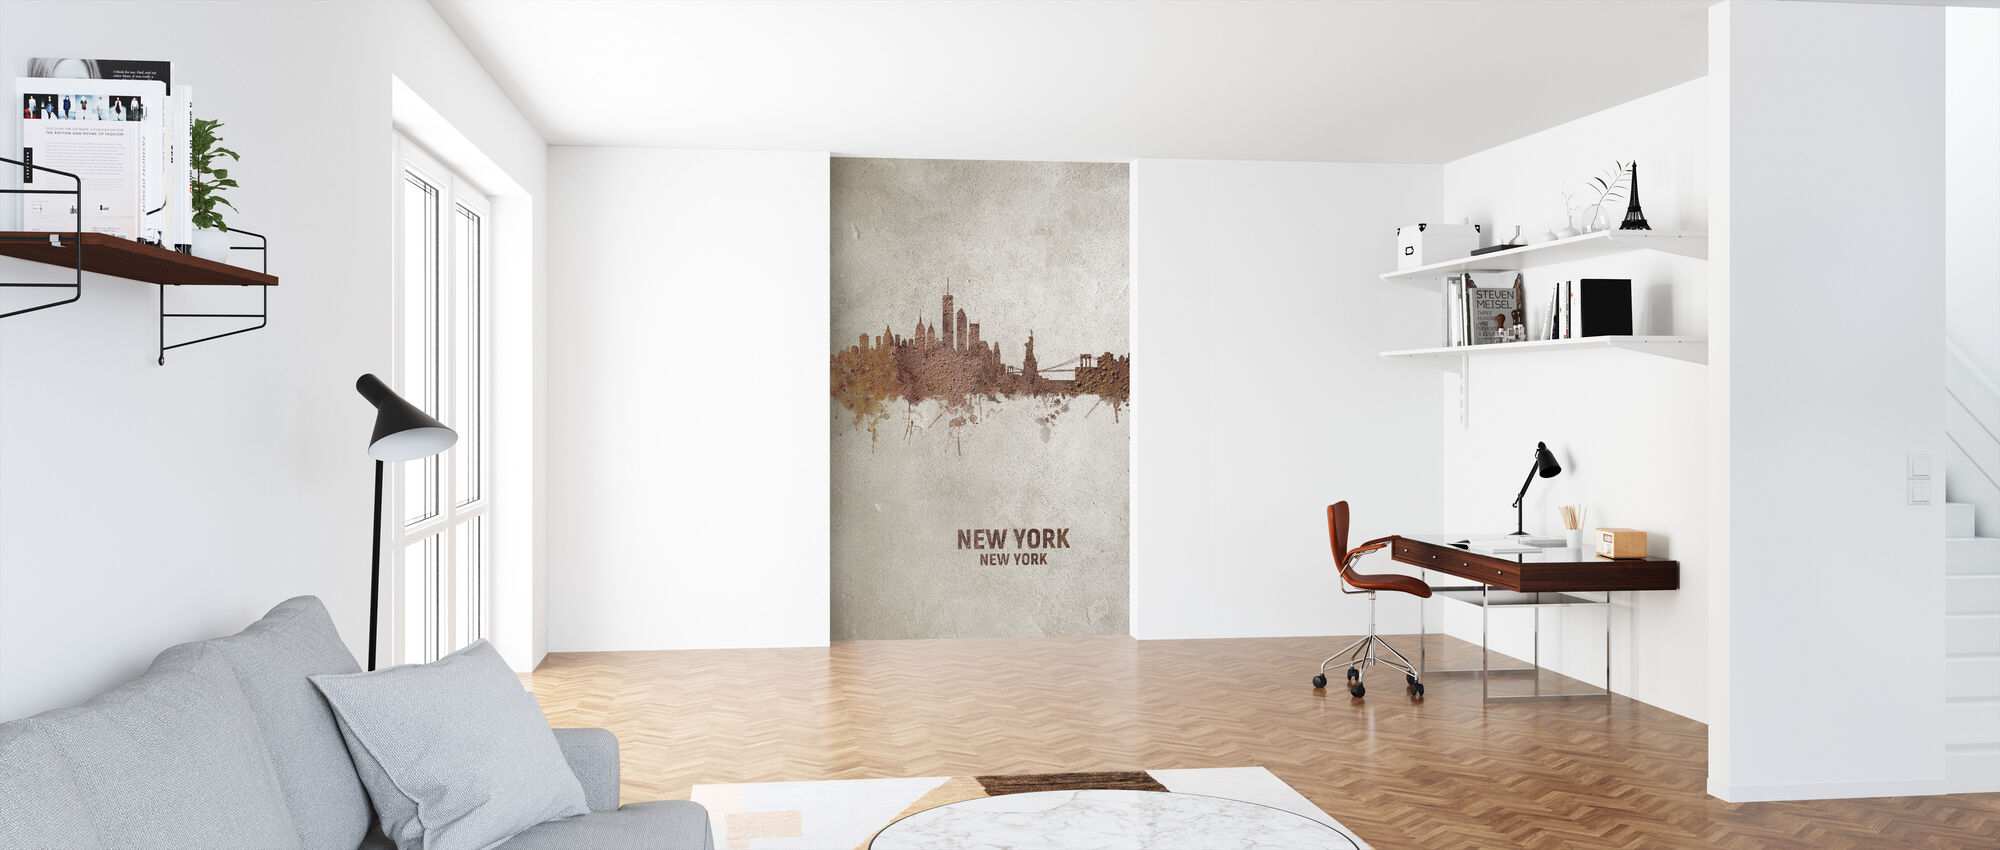 New York Rust Skyline - Wallpaper - Office